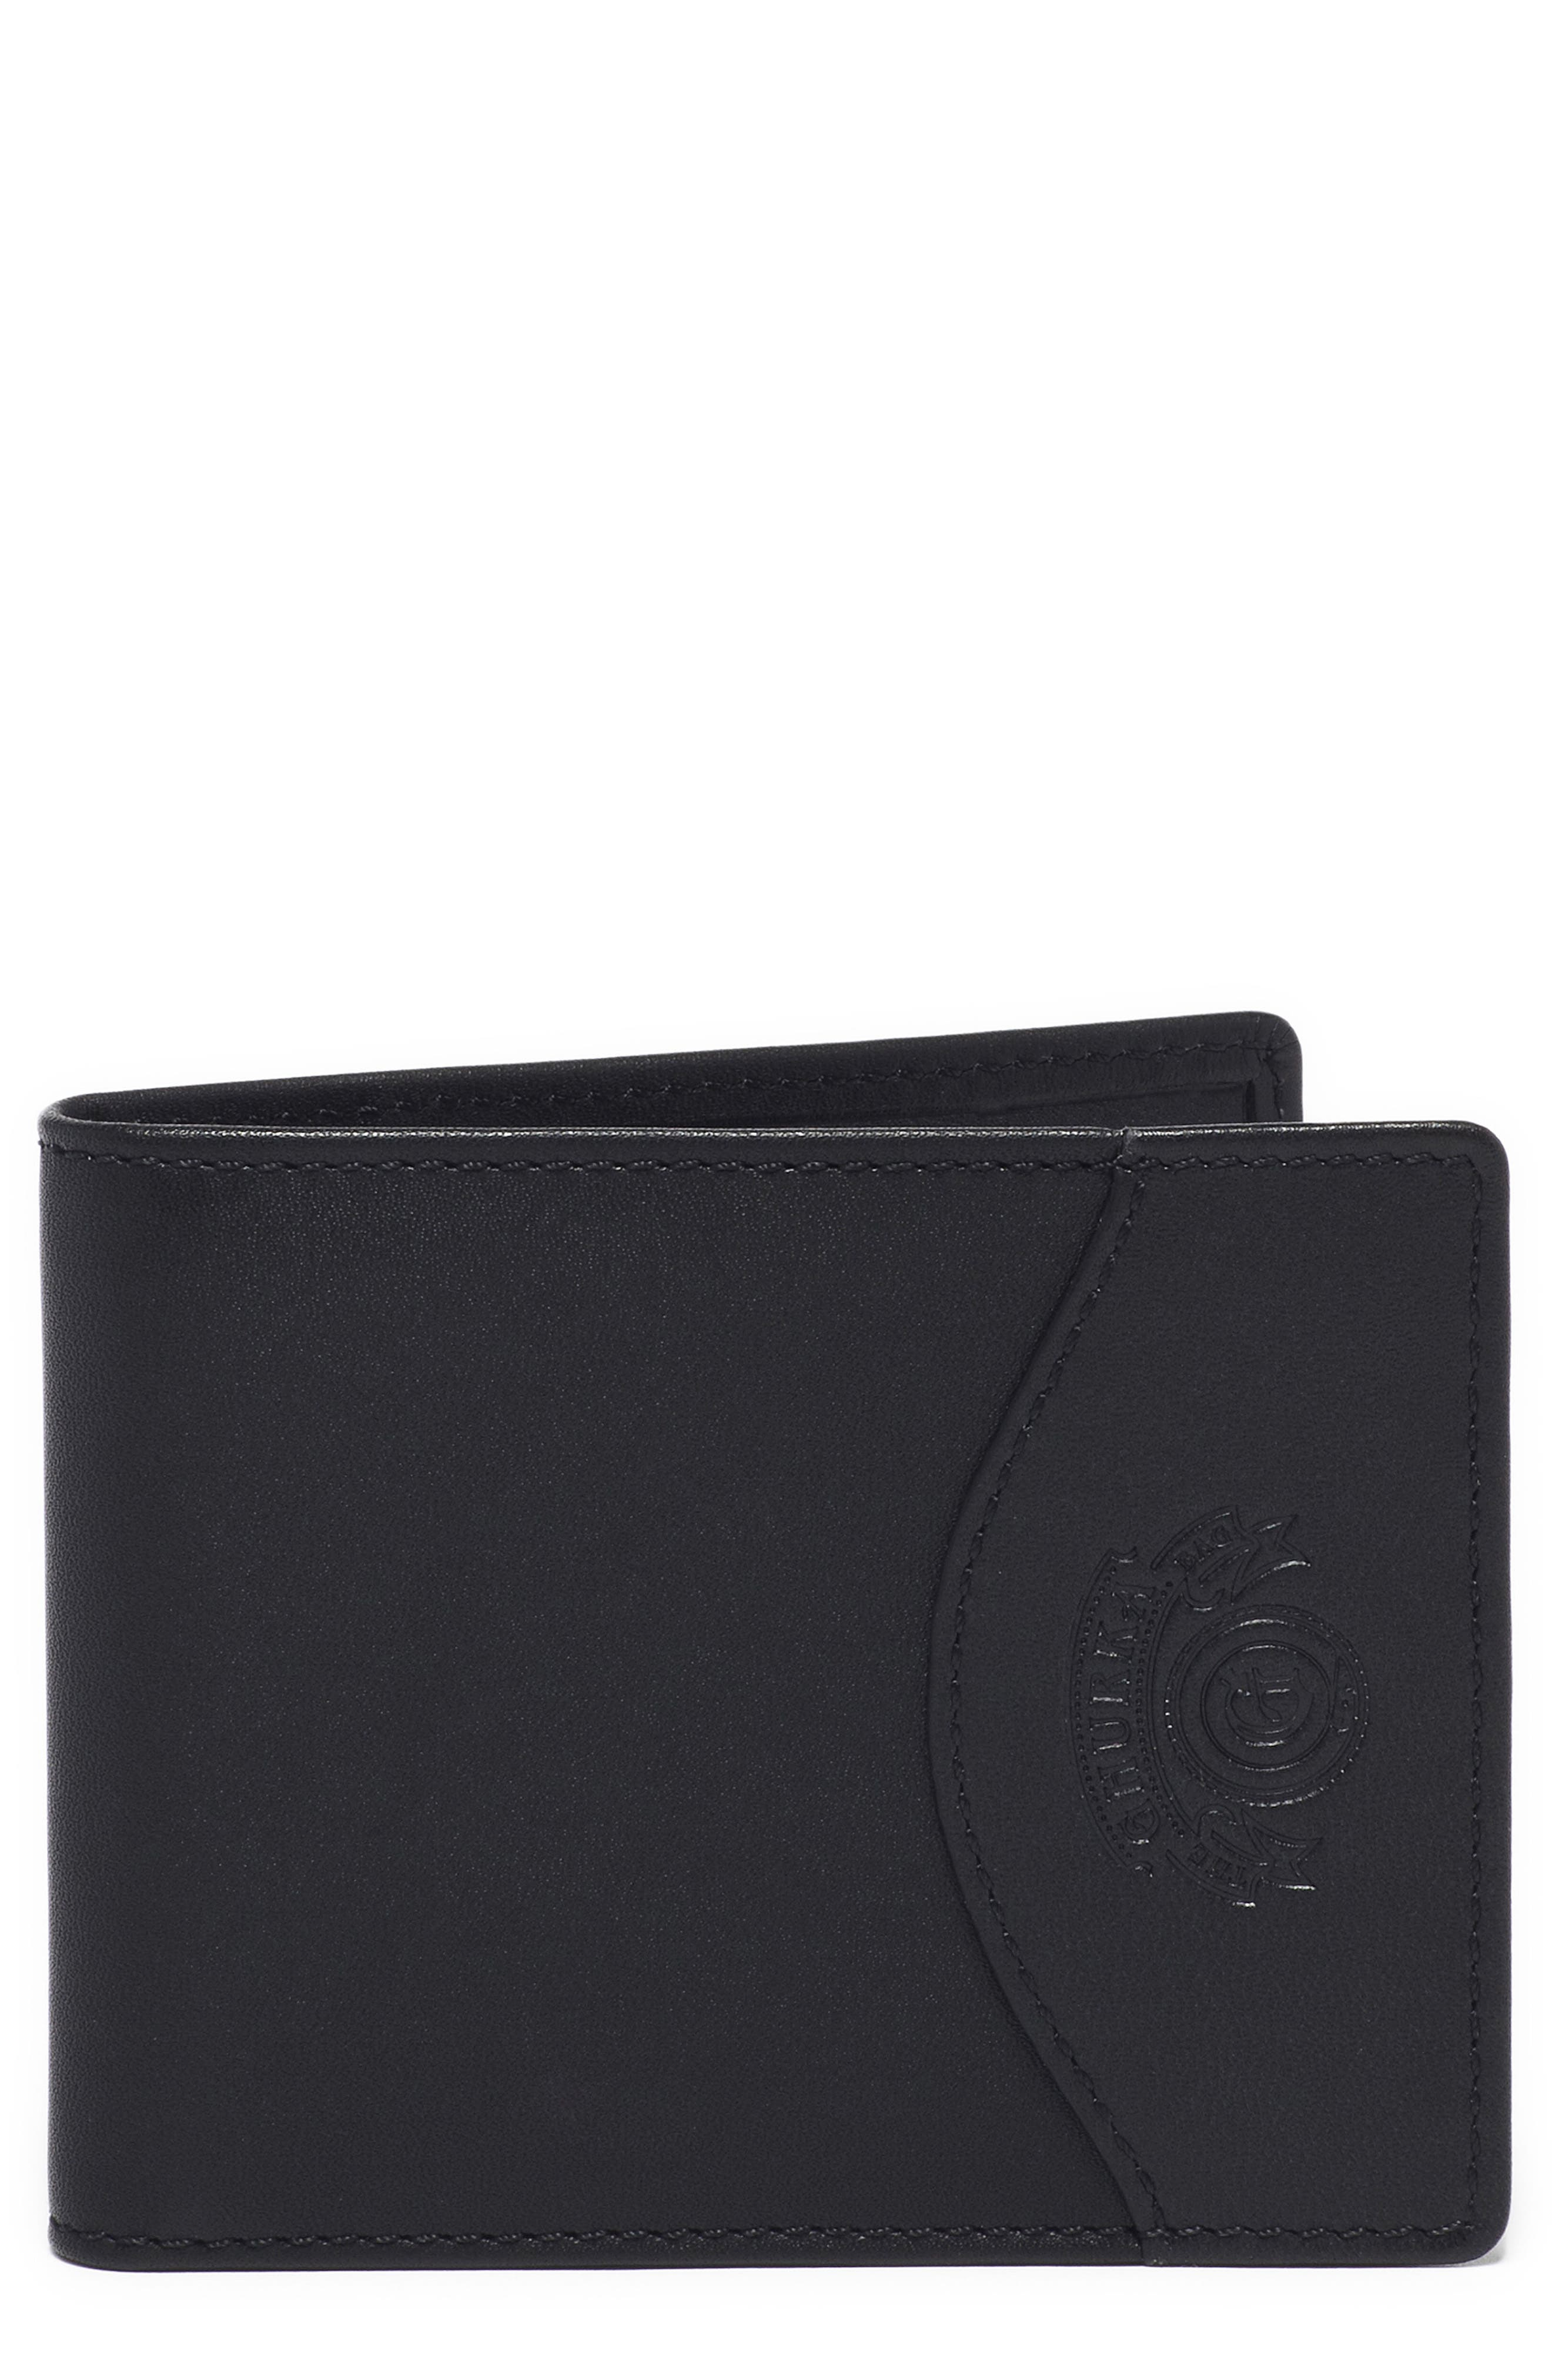 Ghurka Leather Money Clip Wallet